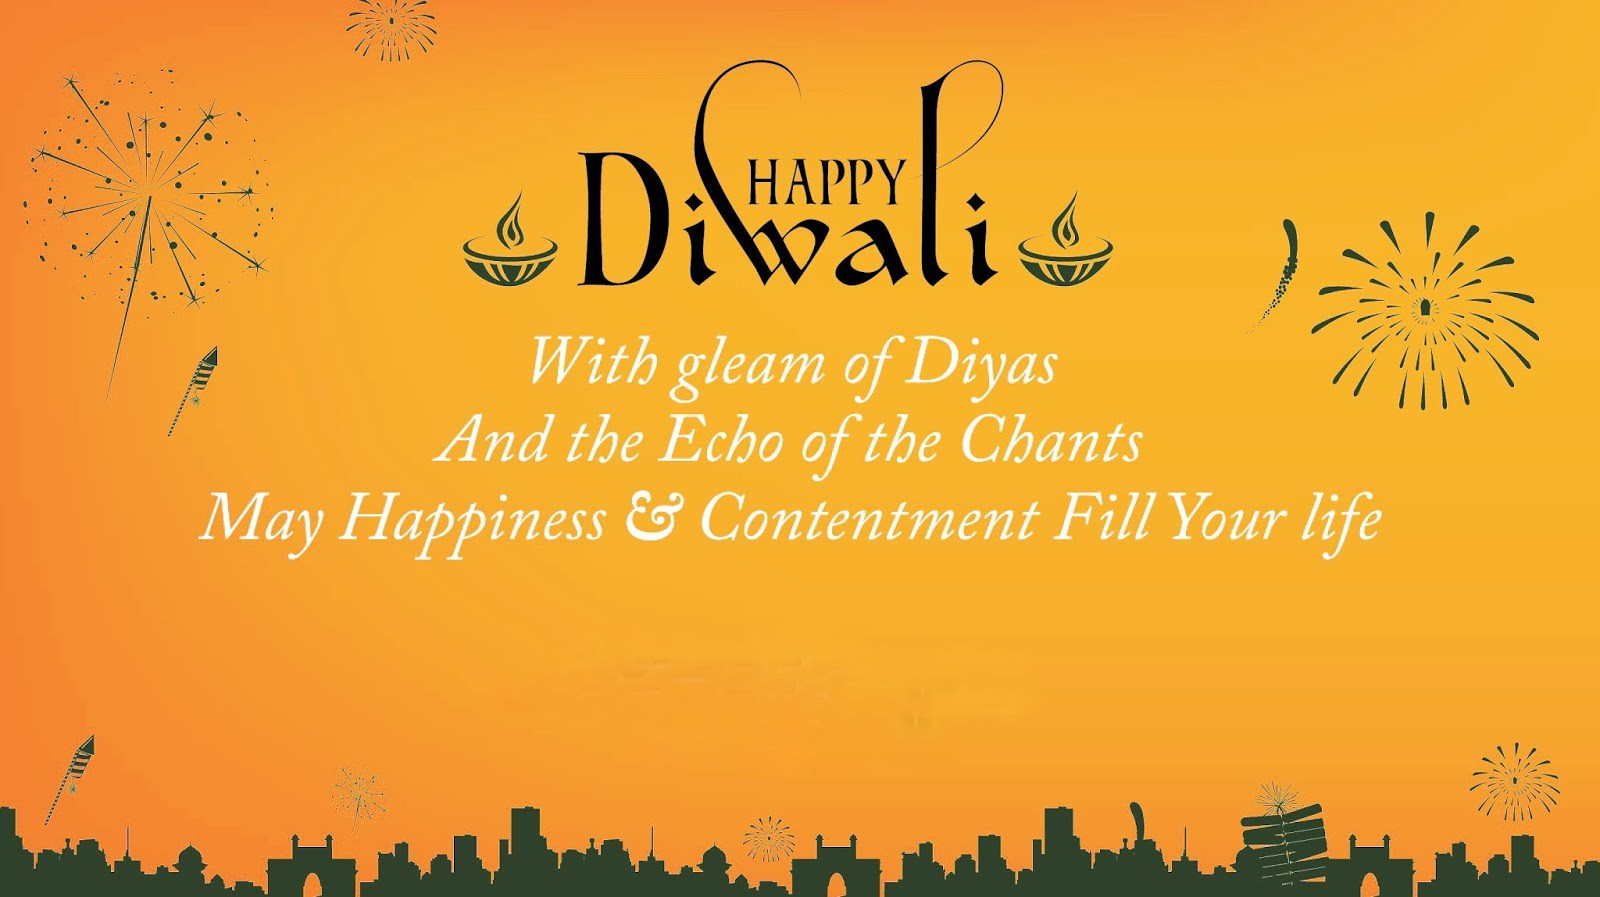 Happy Diwali Greetings in English